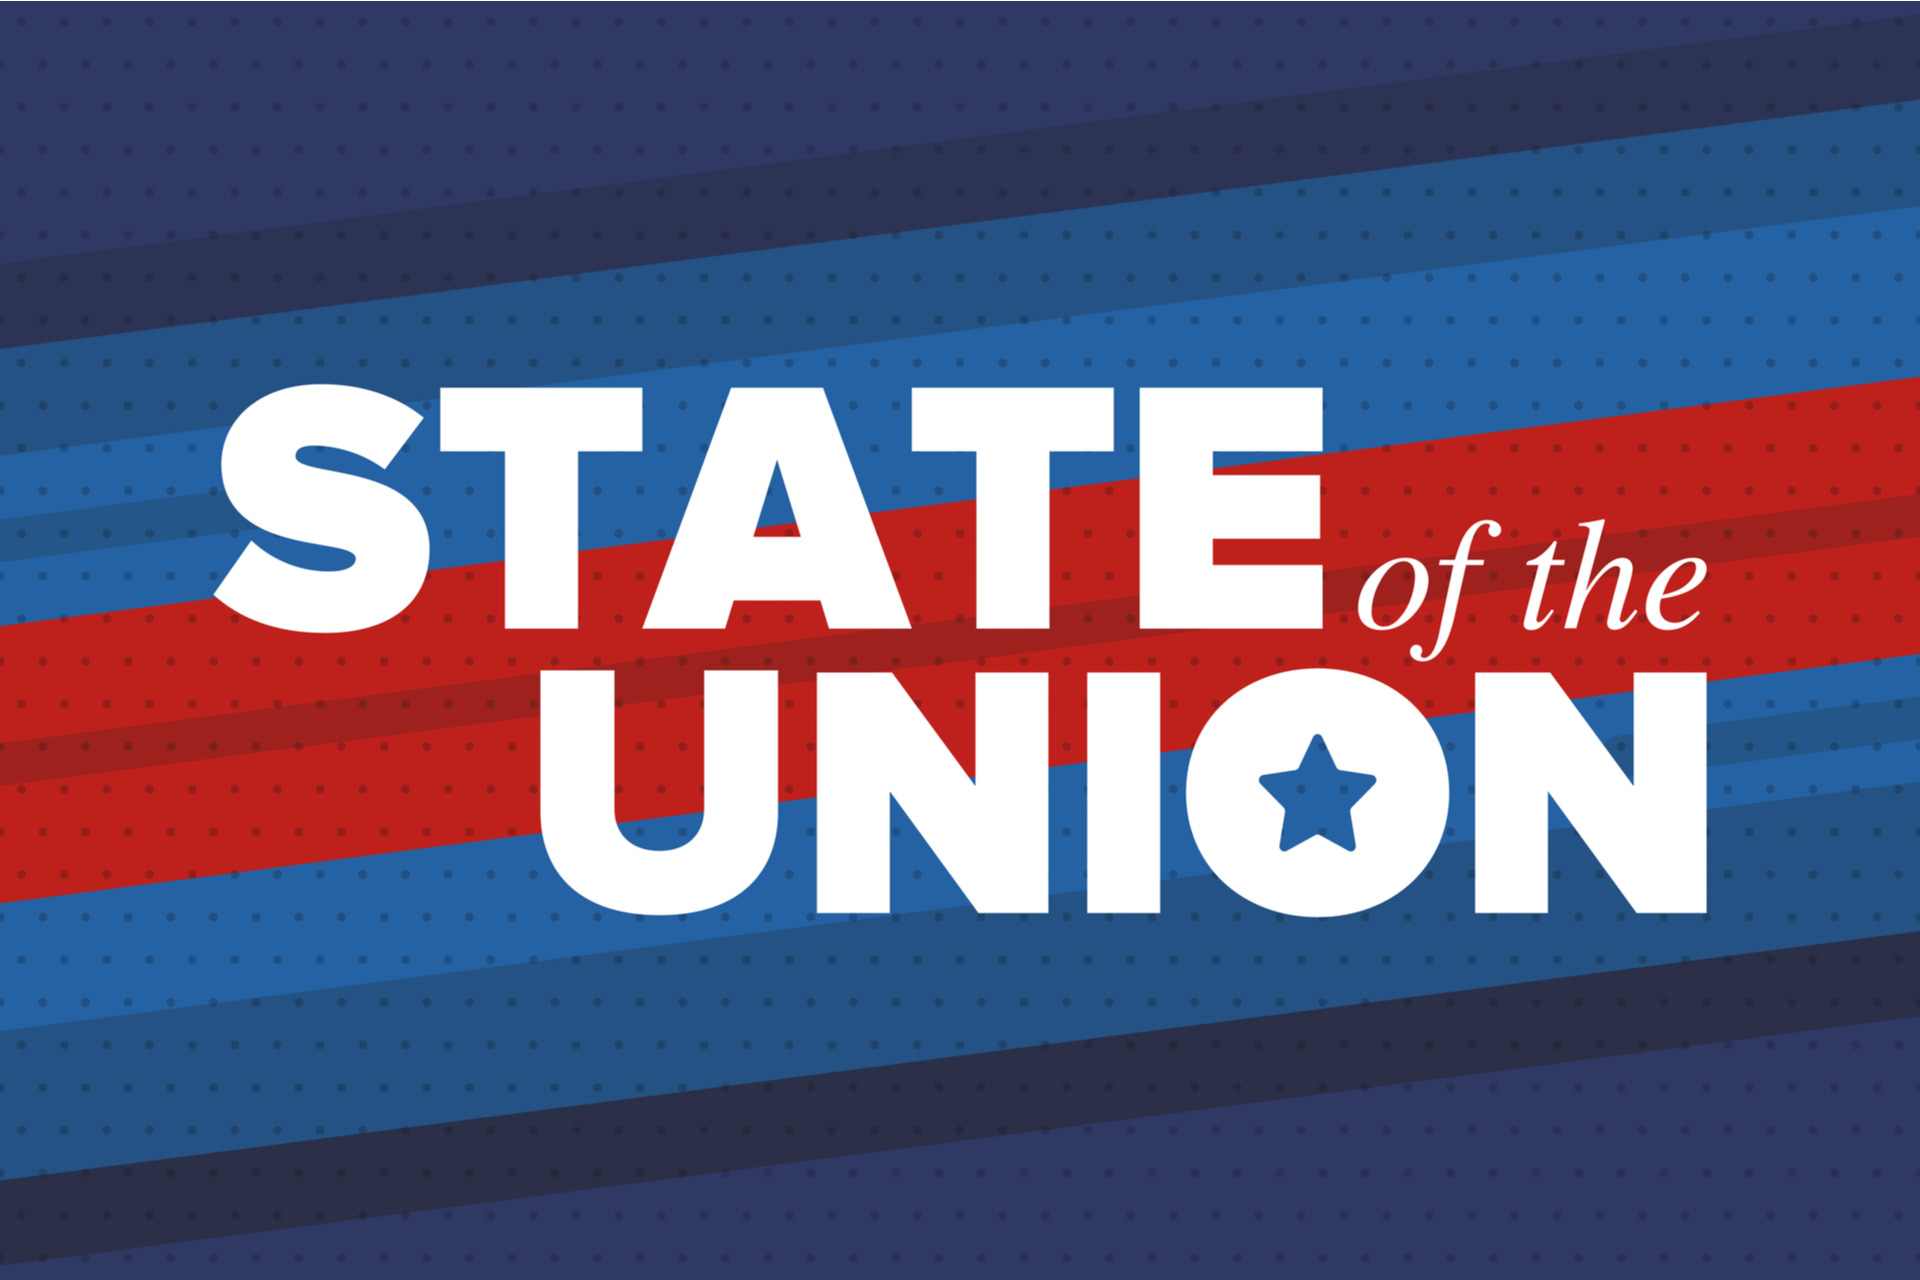 State of the Union Speech Addresses Employee Benefits